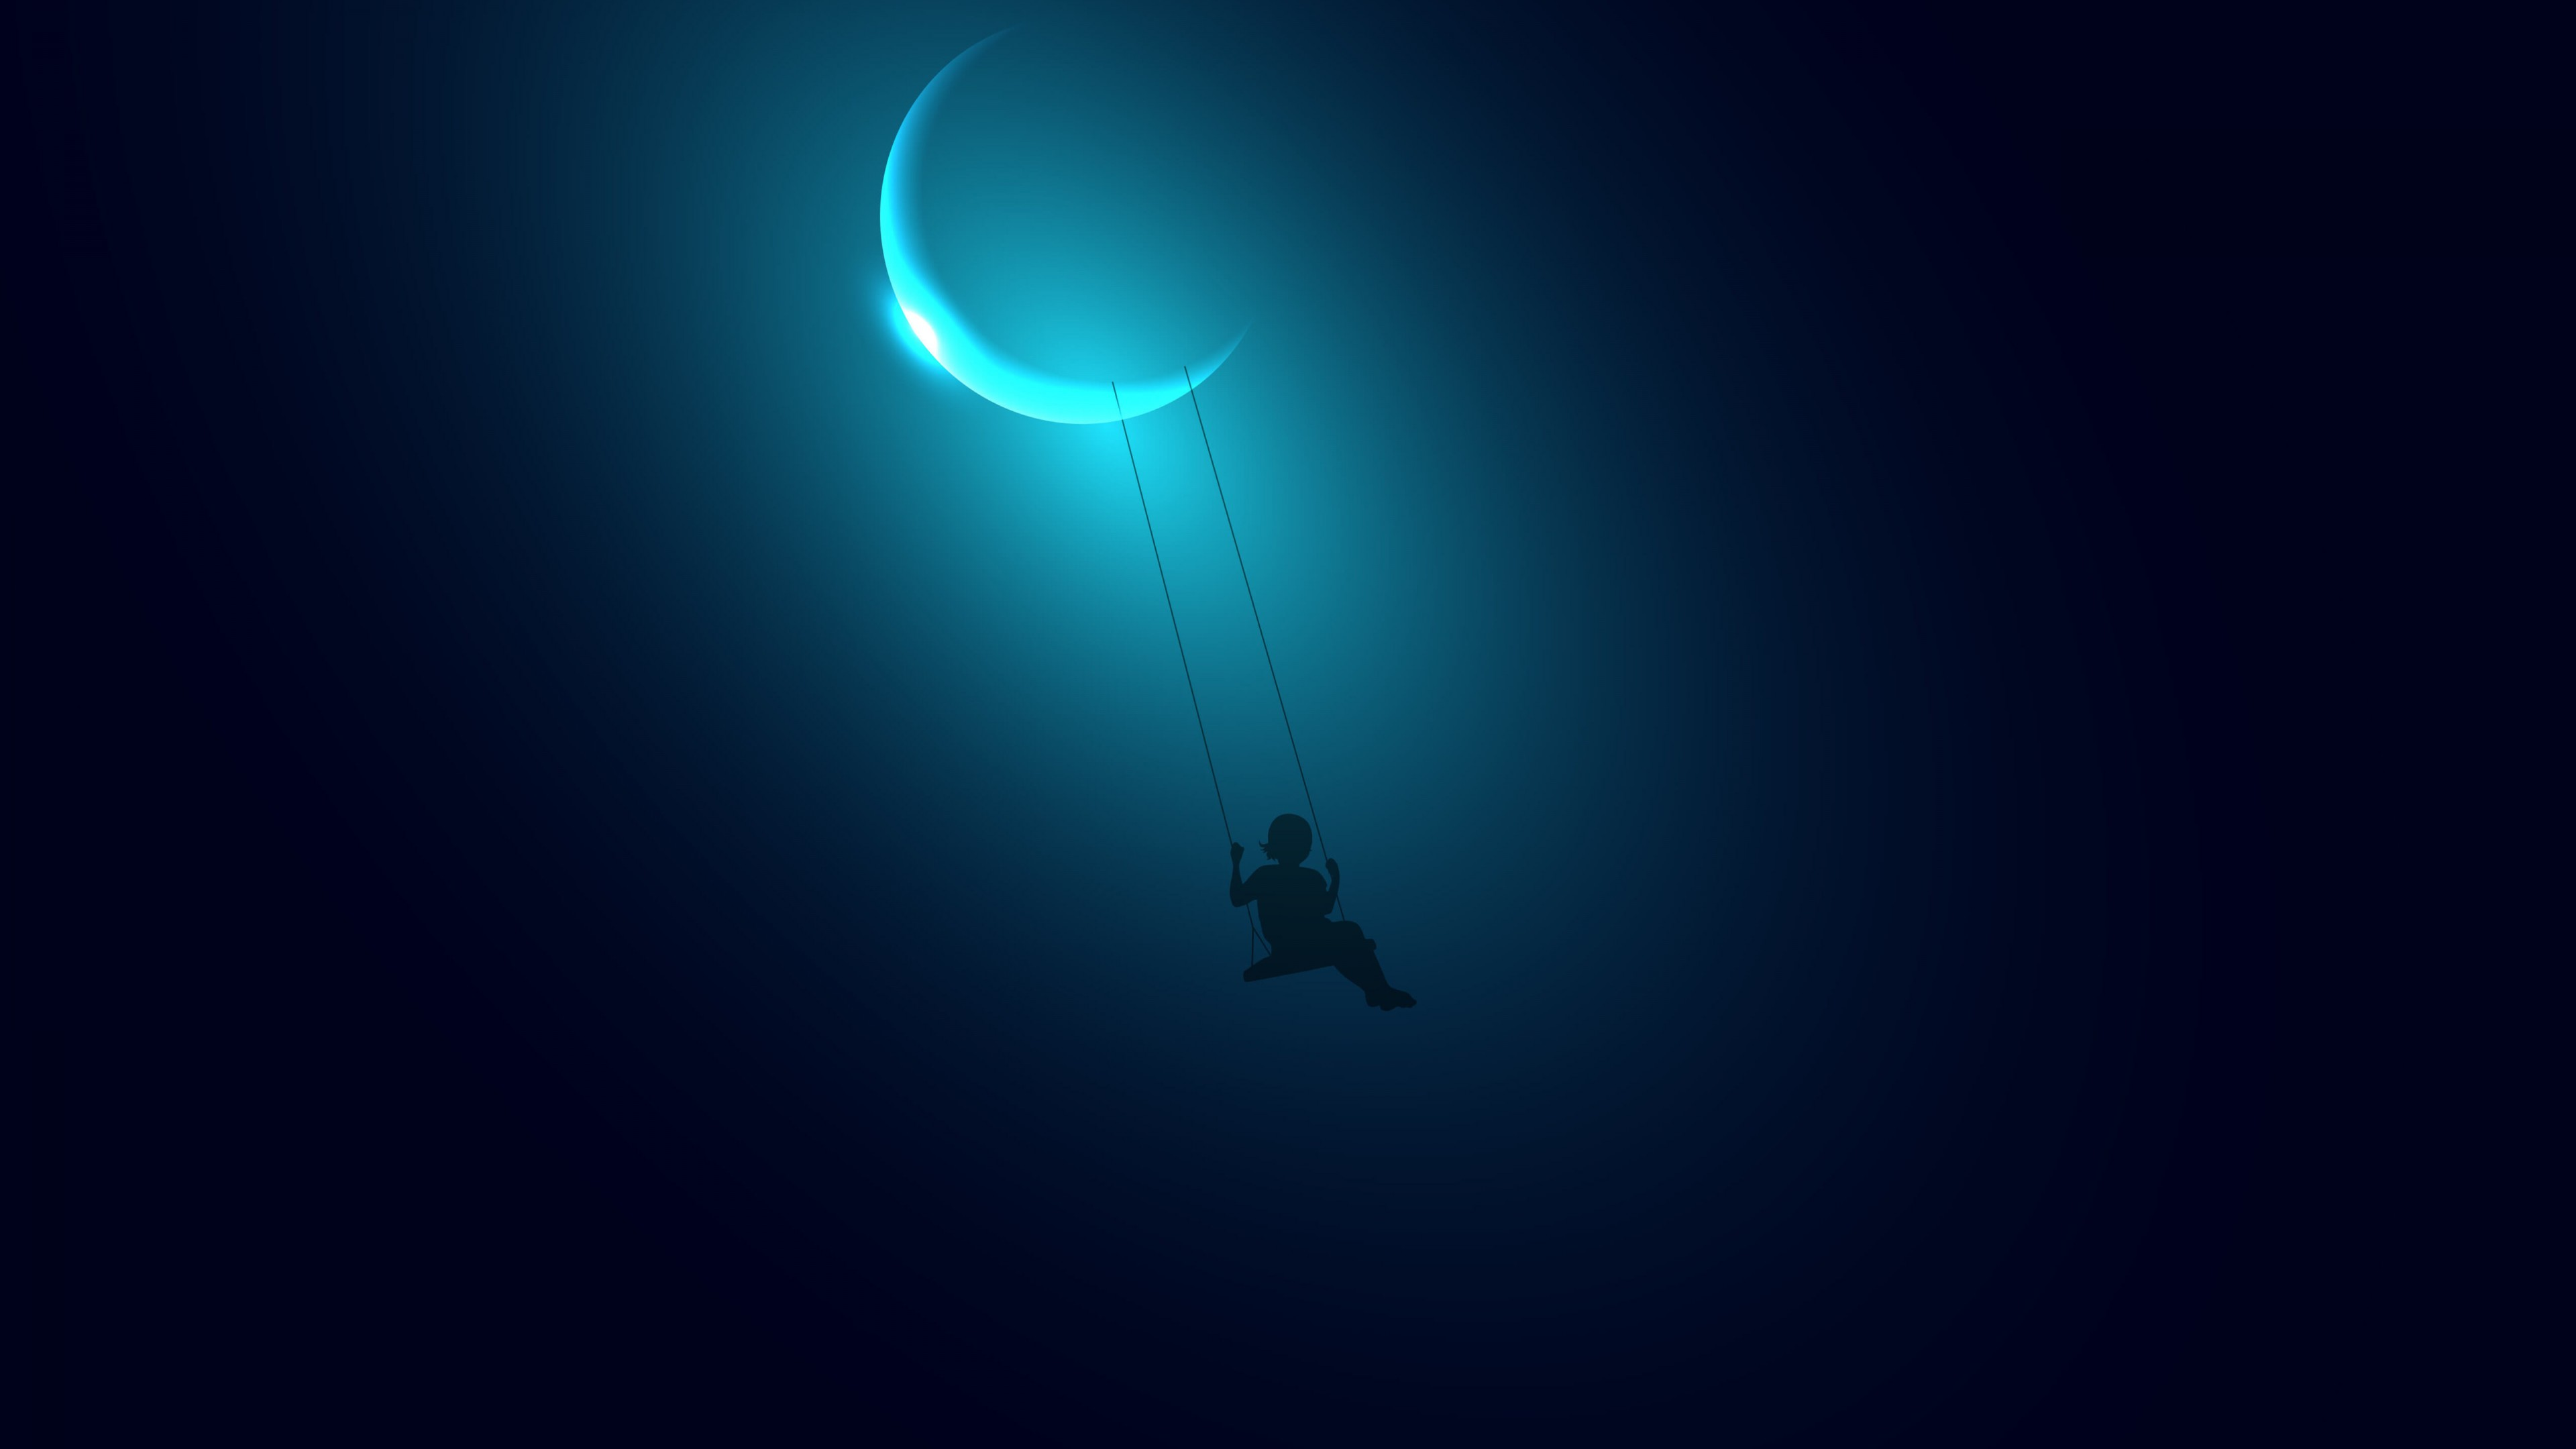 Little Girl Swinging on the Moon wallpaper